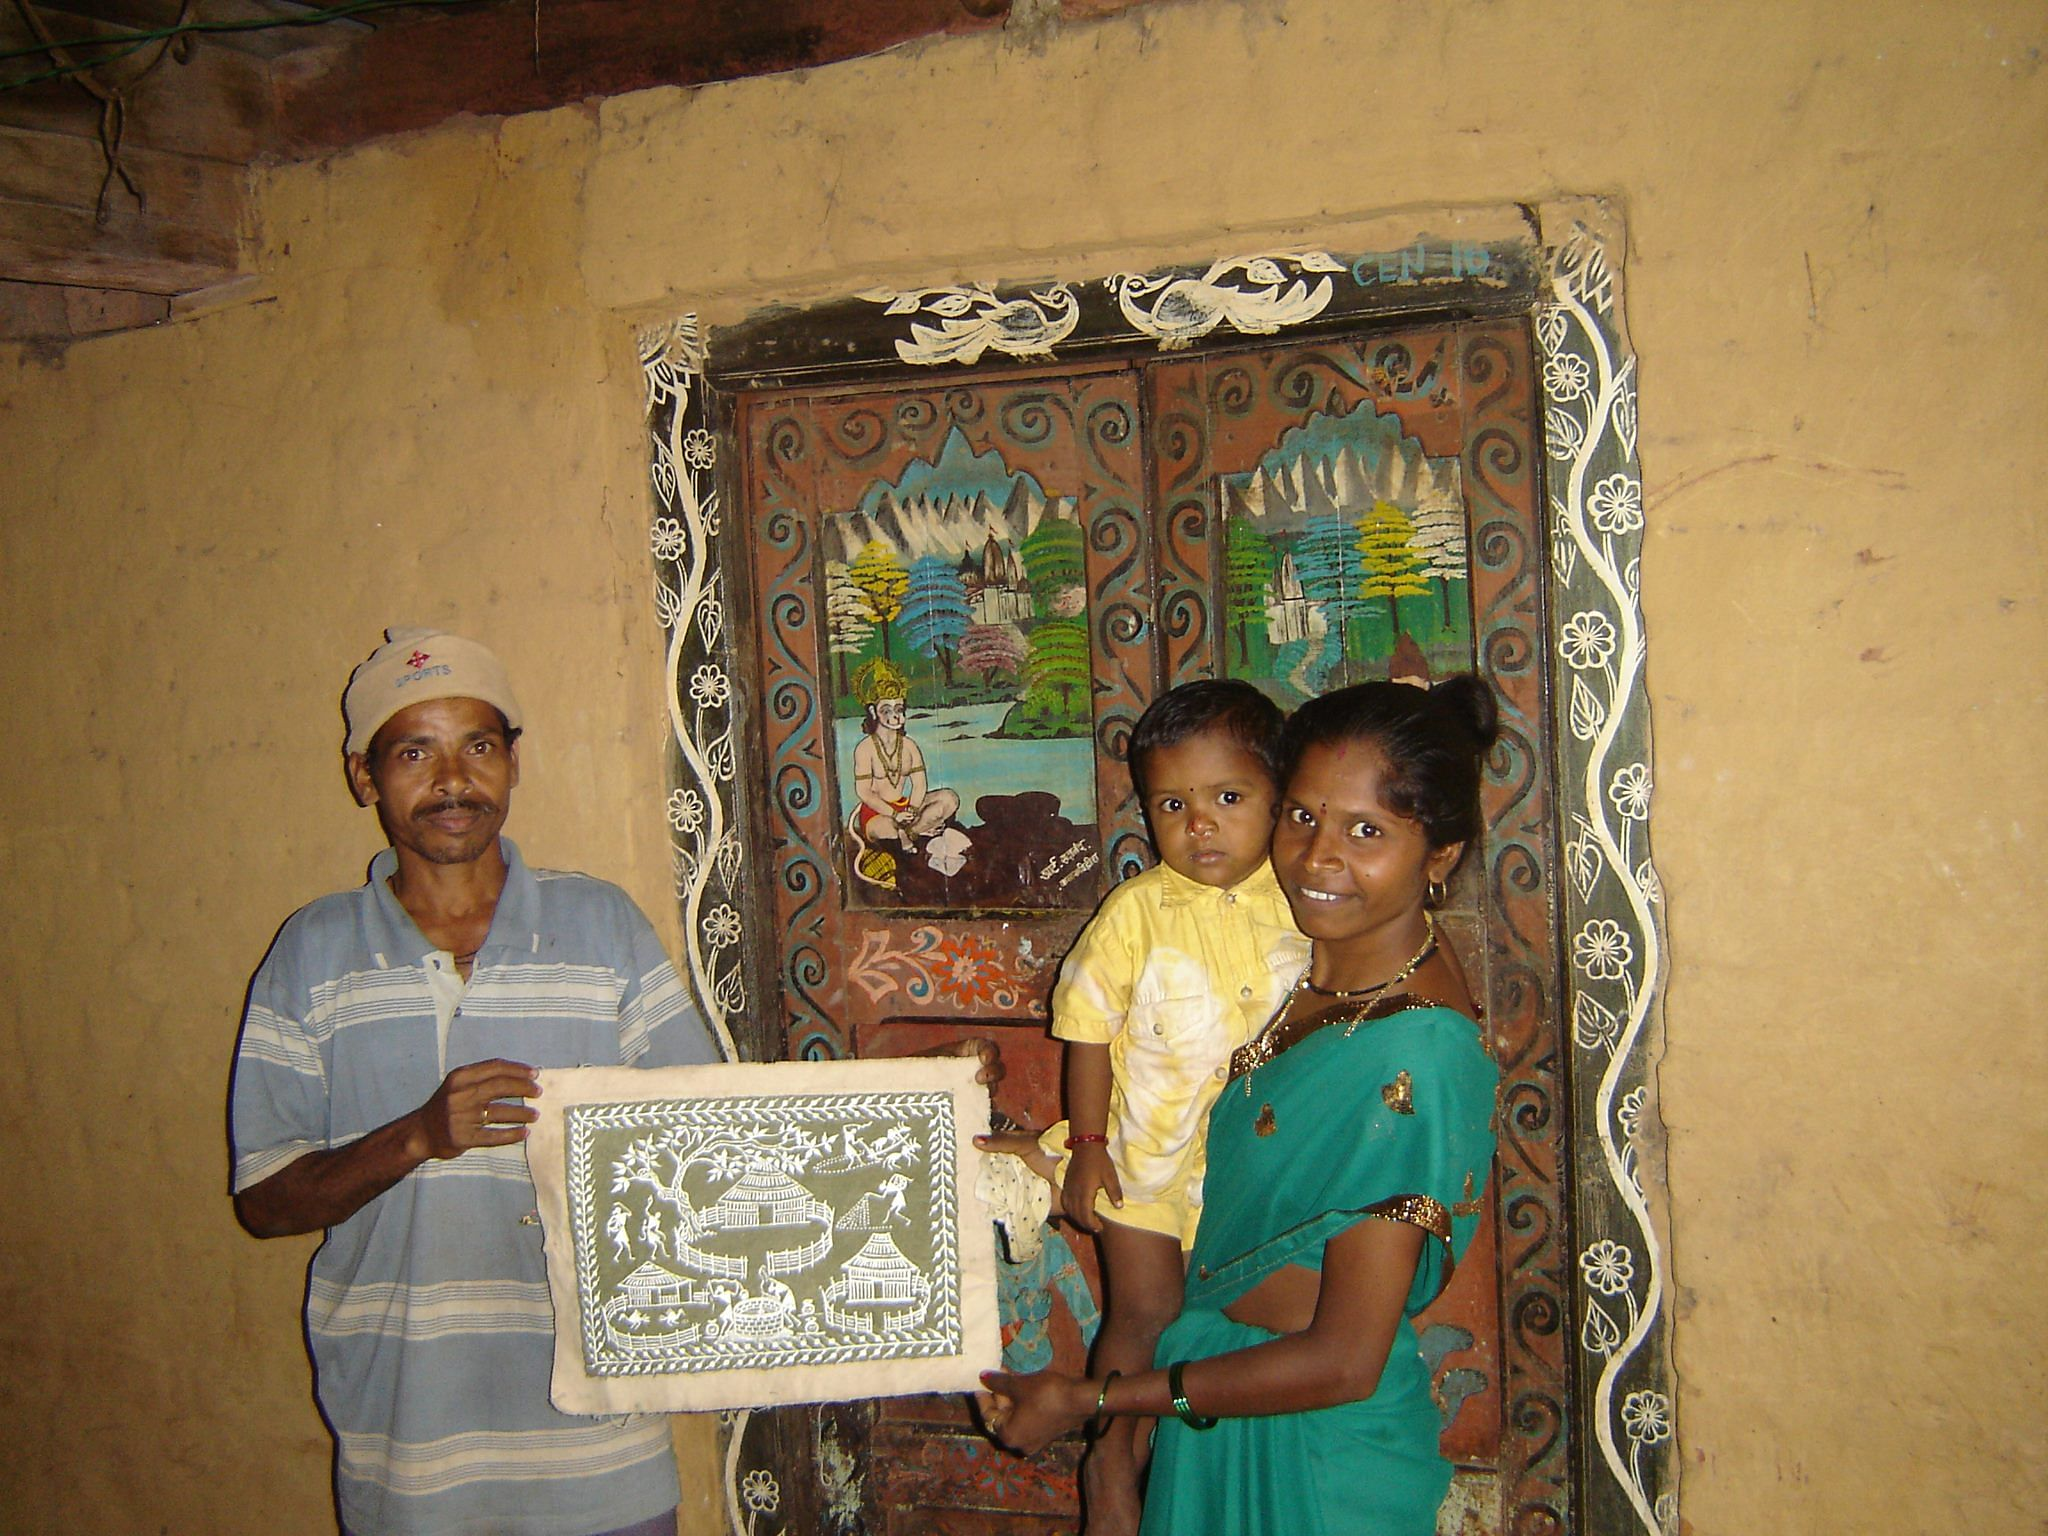 Warli artist Sadanand and his wife.